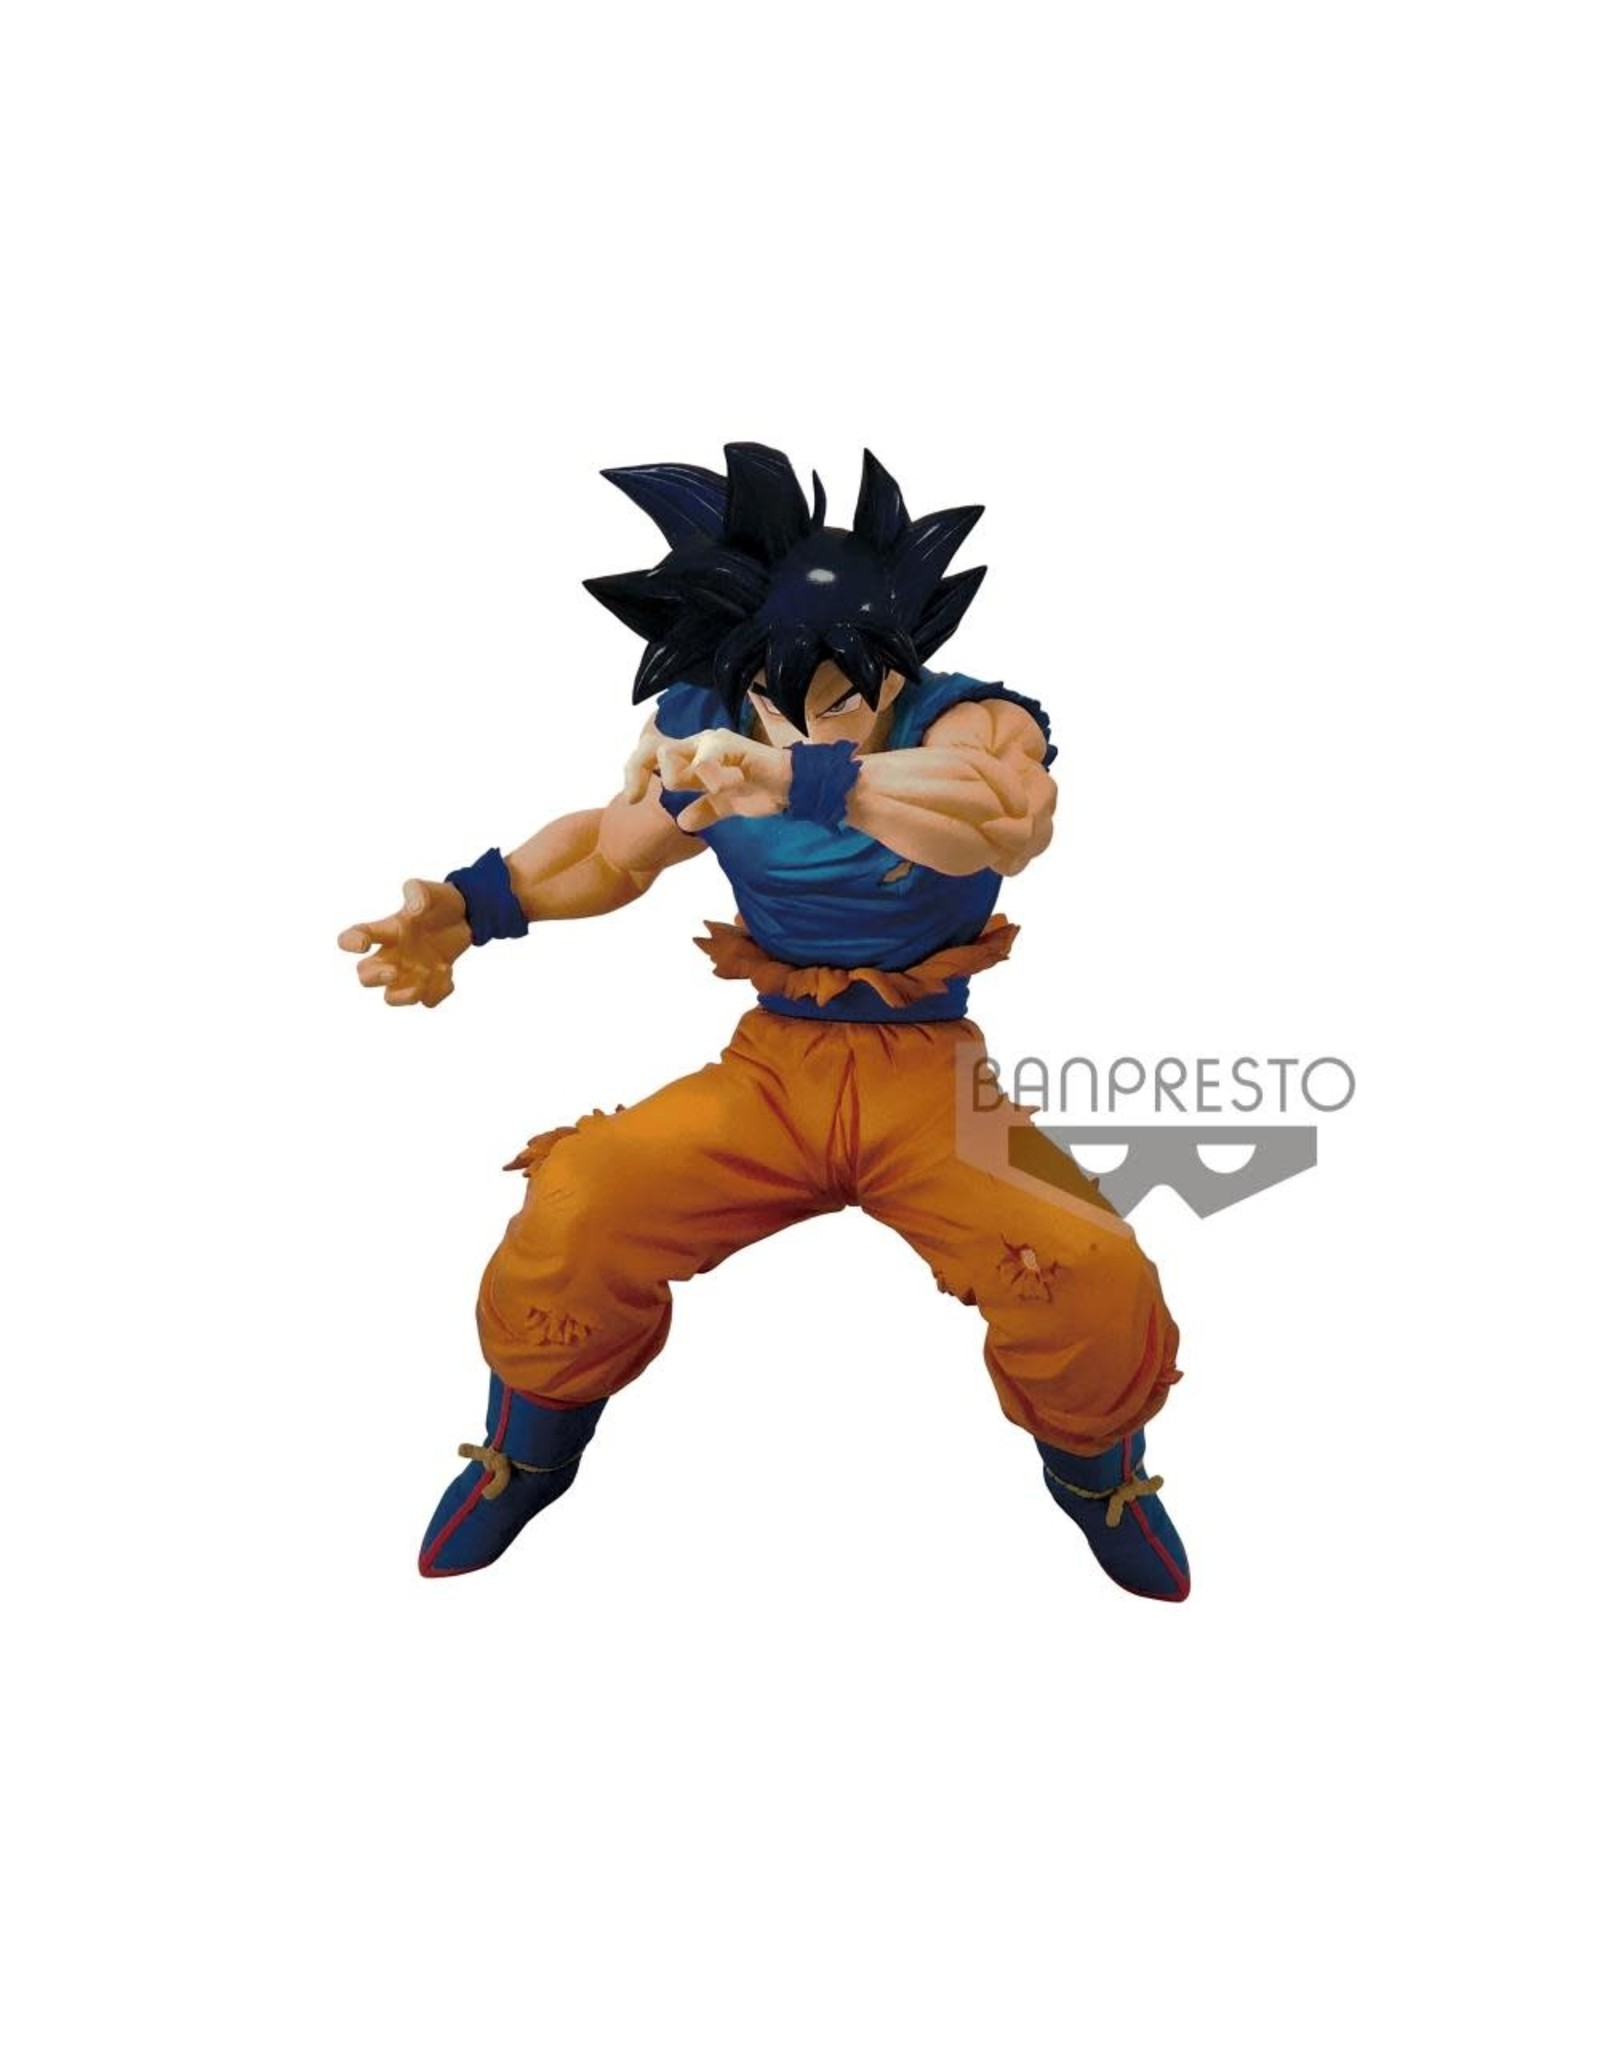 Banpresto Dragon Ball Z Blood of Saiyans Ultra Instinct -Sign- Goku (Special Ver. Vol.2)